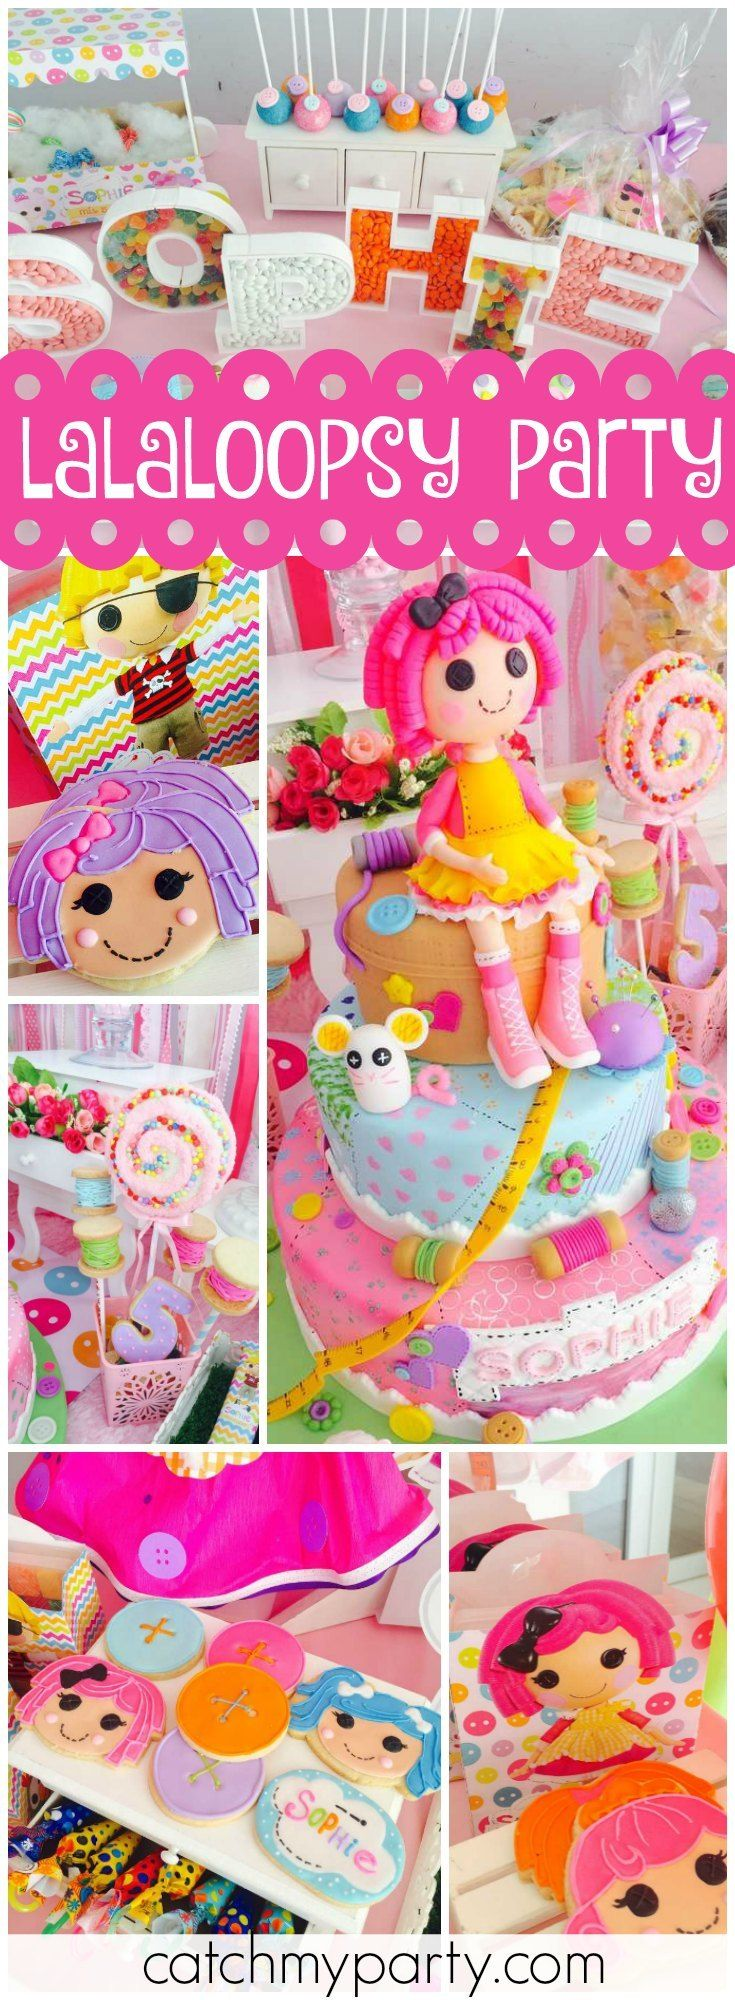 So many adorable ideas at this Lalaloopsy birthday party! See more party ideas at Catchmyparty.com!